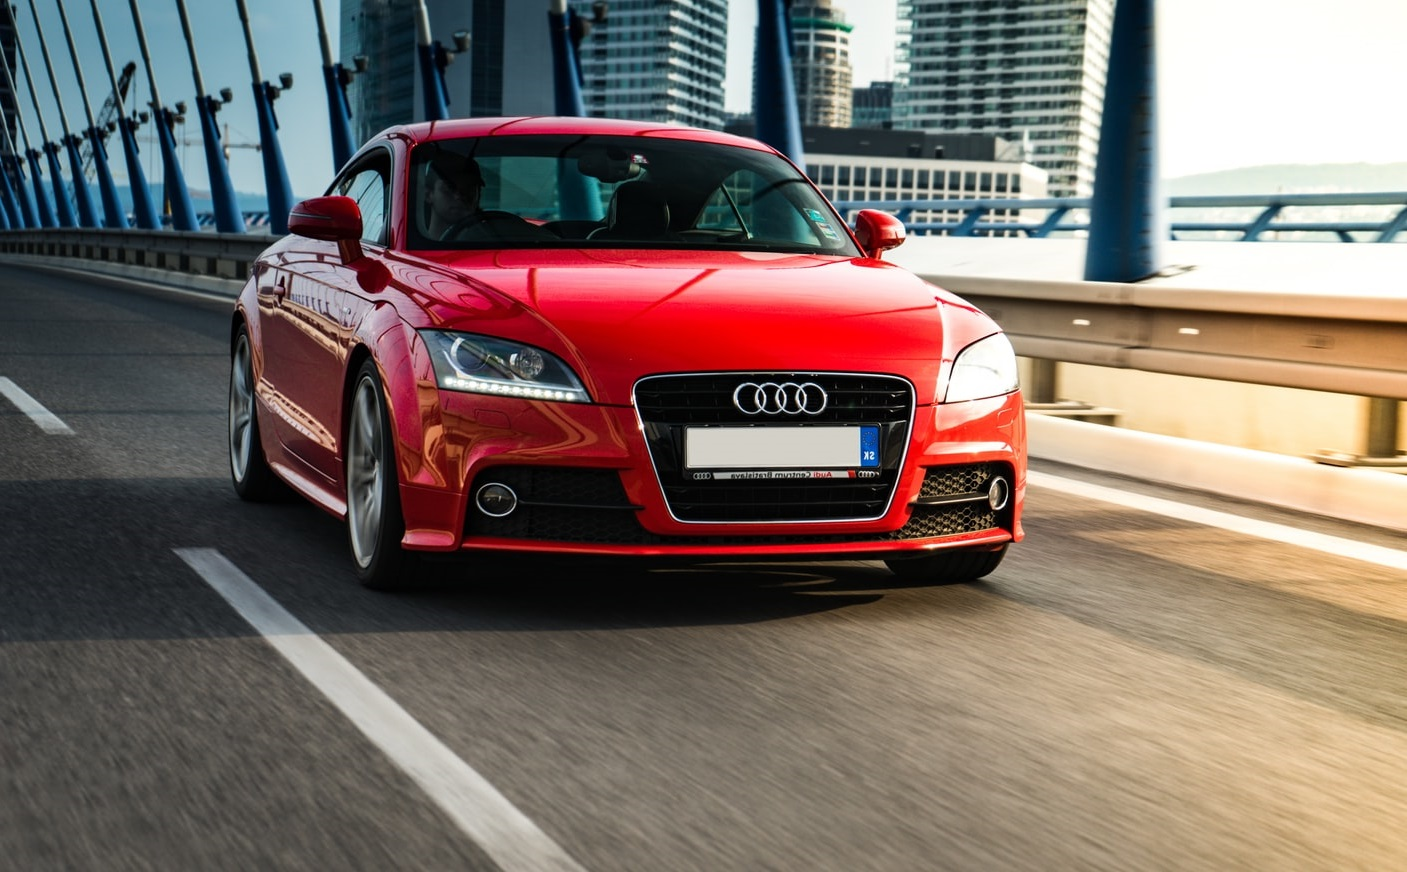 Red Audi TT on the road